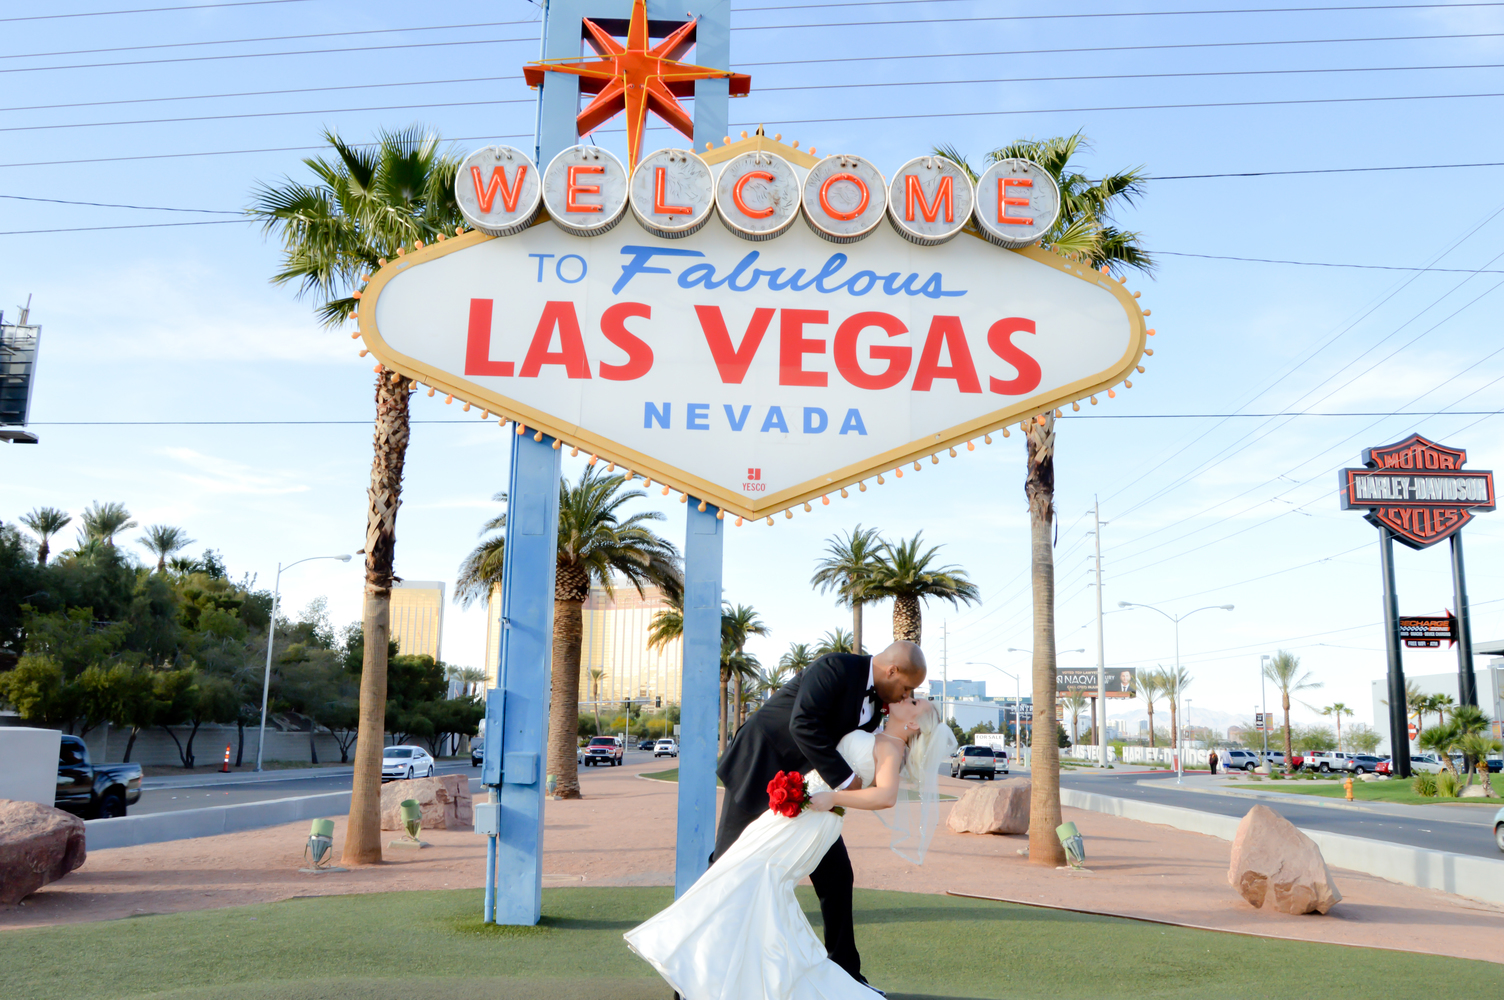 Las vegas wedding photography packages mon bel ami for Crazy las vegas weddings